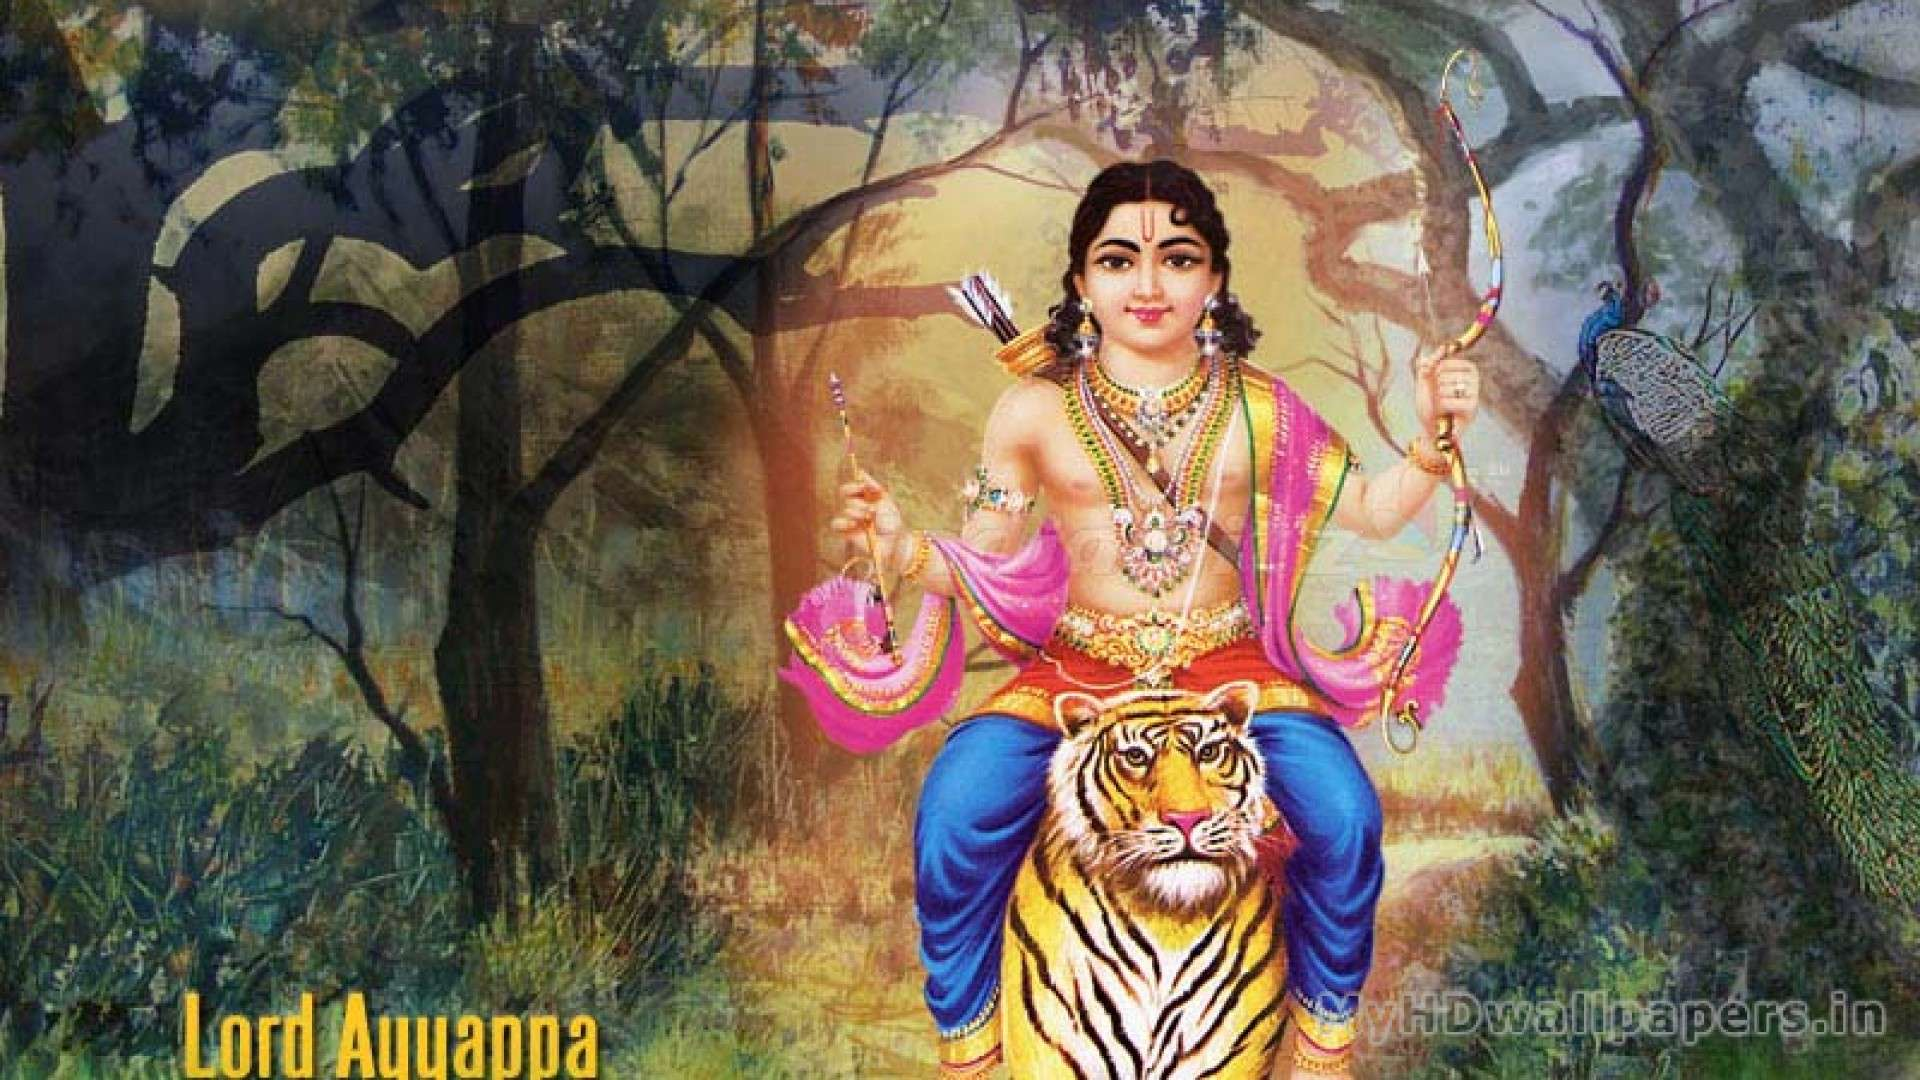 Must see Wallpaper High Resolution Lord Ayyappa - 26471  2018_629793.in/download/26471